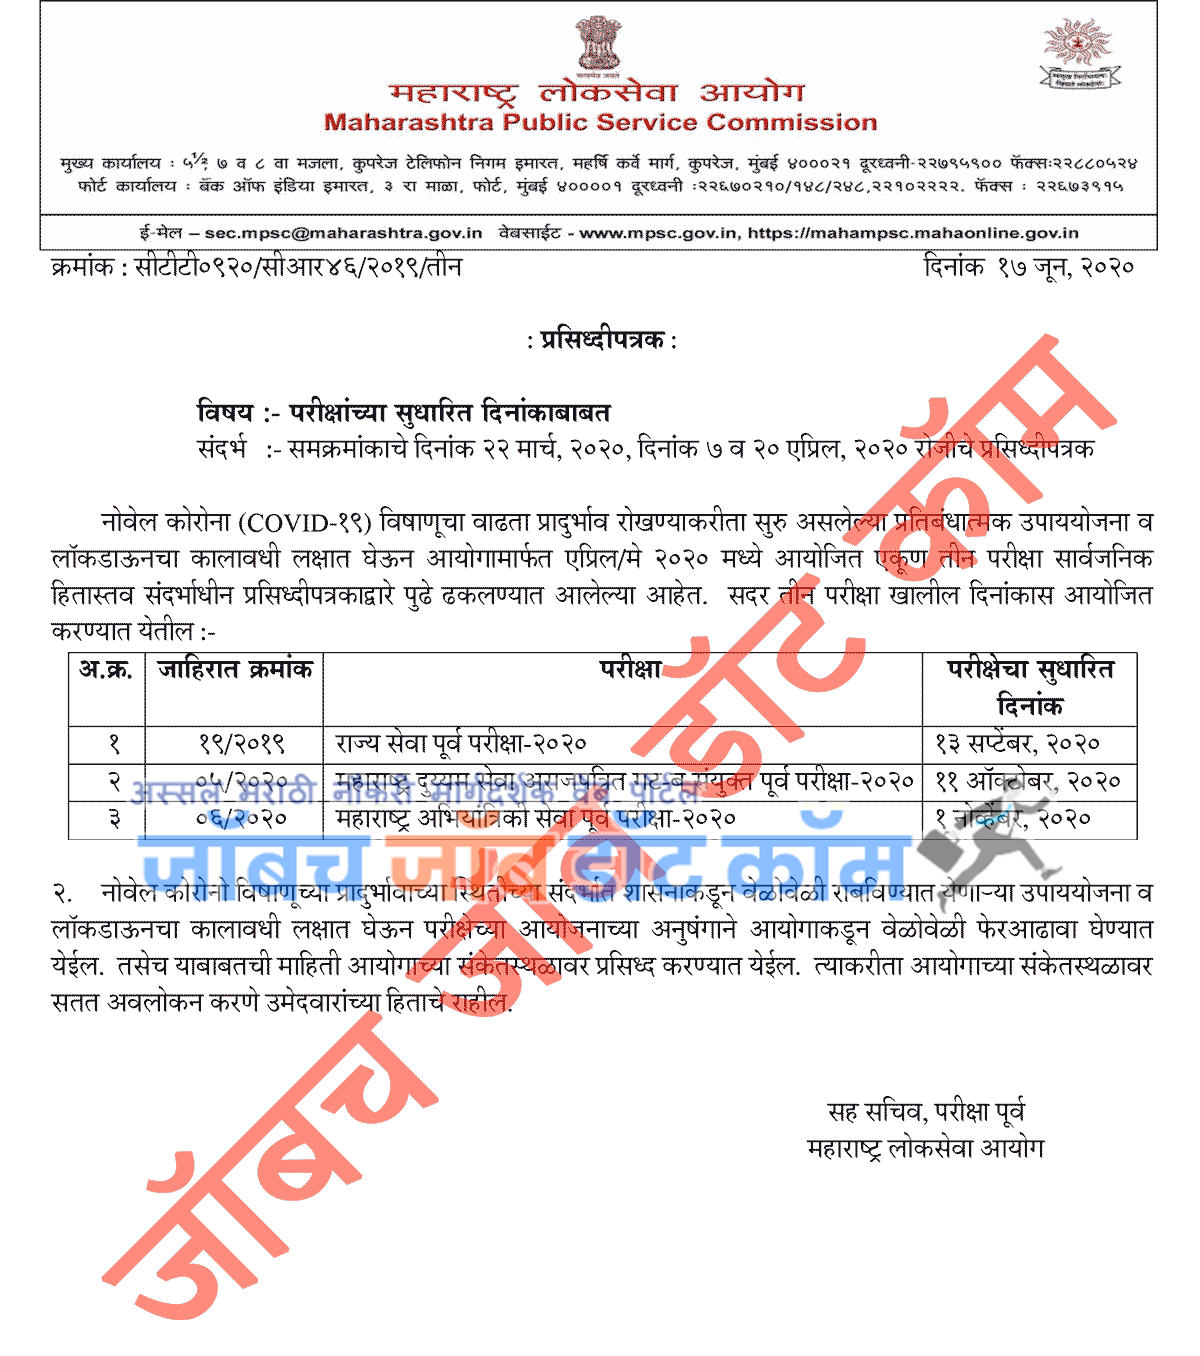 Maharashtra MPSC Exam Schedule after Carona Covid 19 Lockdown